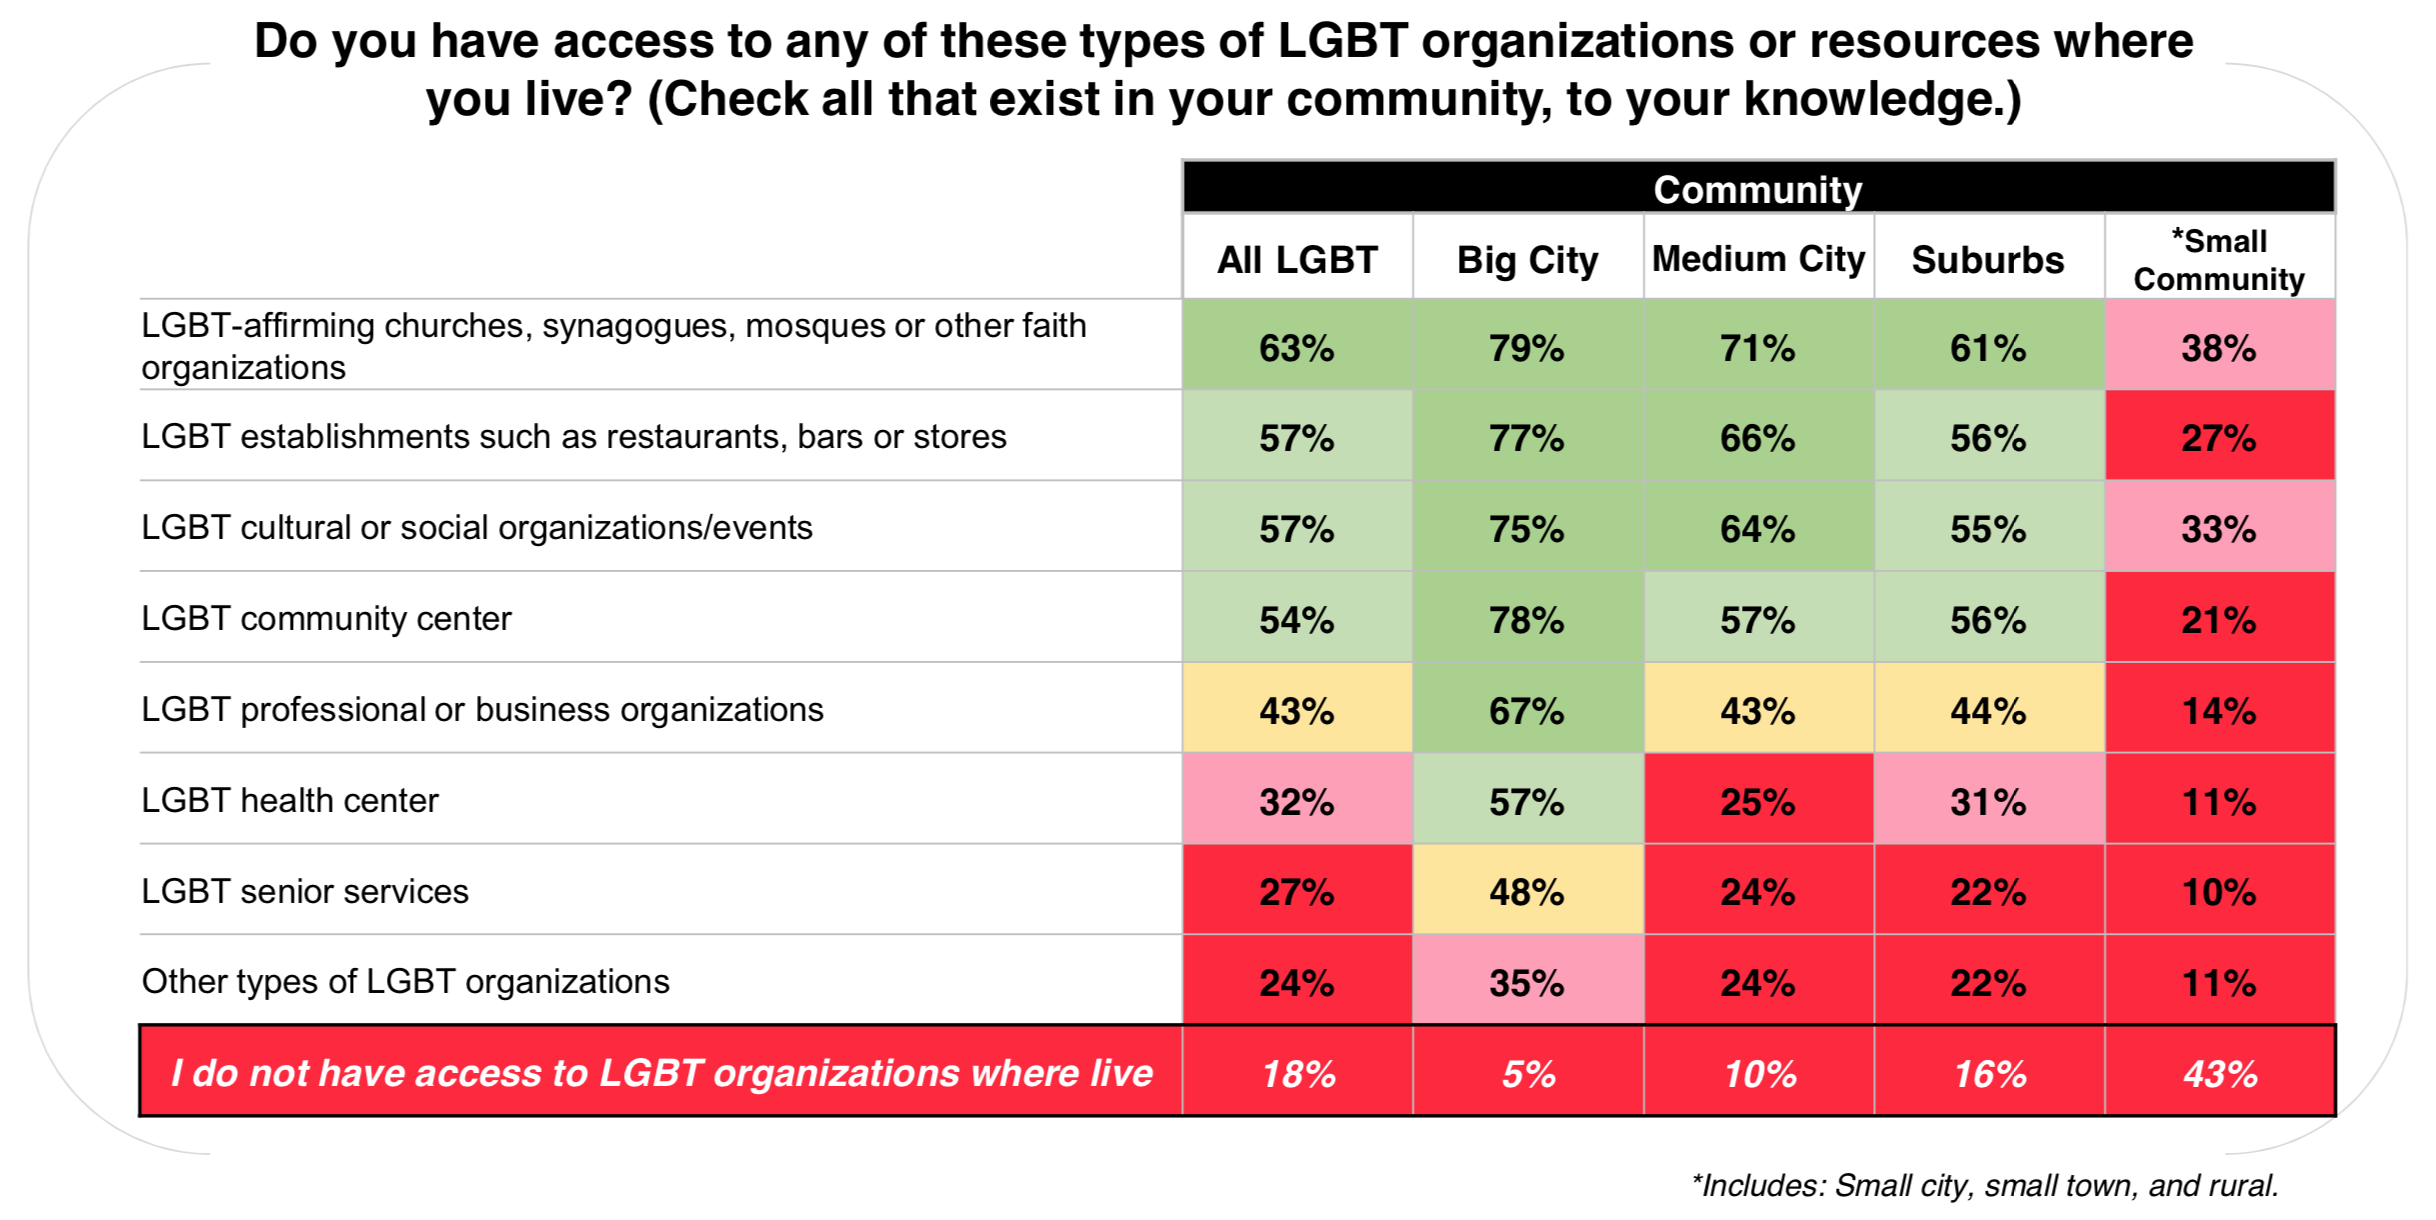 LGBT community members living in small cities, small towns and rural areas have the most limited access overall to LGBT- affirming services. Four in ten LGBT respondents in small communities are without access to any LGBT specific community services where they live. Access to LGBT senior services is particularly low in communities of all sizes and especially outside big cities.